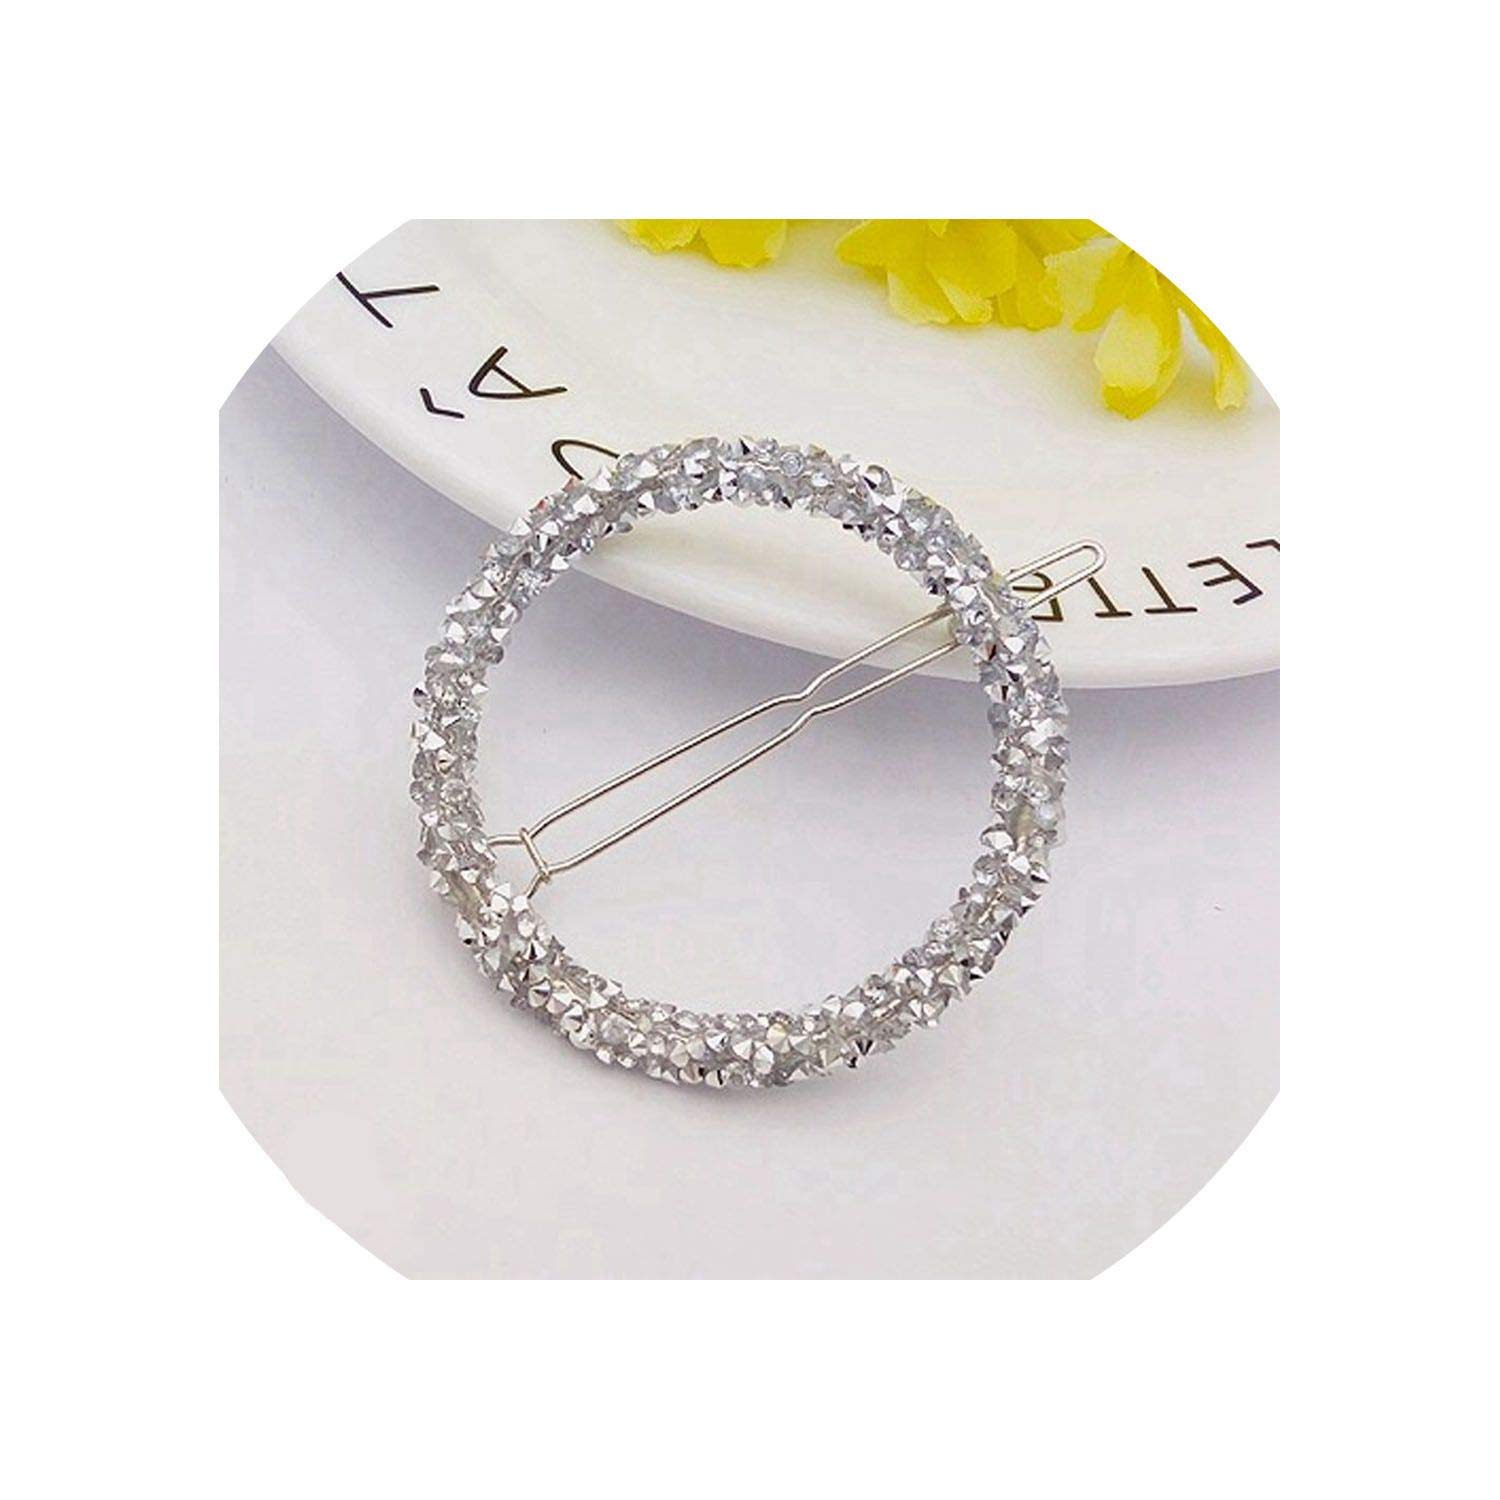 1 Pcs Fashion Crystal Rhinestones Hairpin Star Triangle Round Shape Women Hair Clips Barrettes Hair Styling Accessories,Round Silver